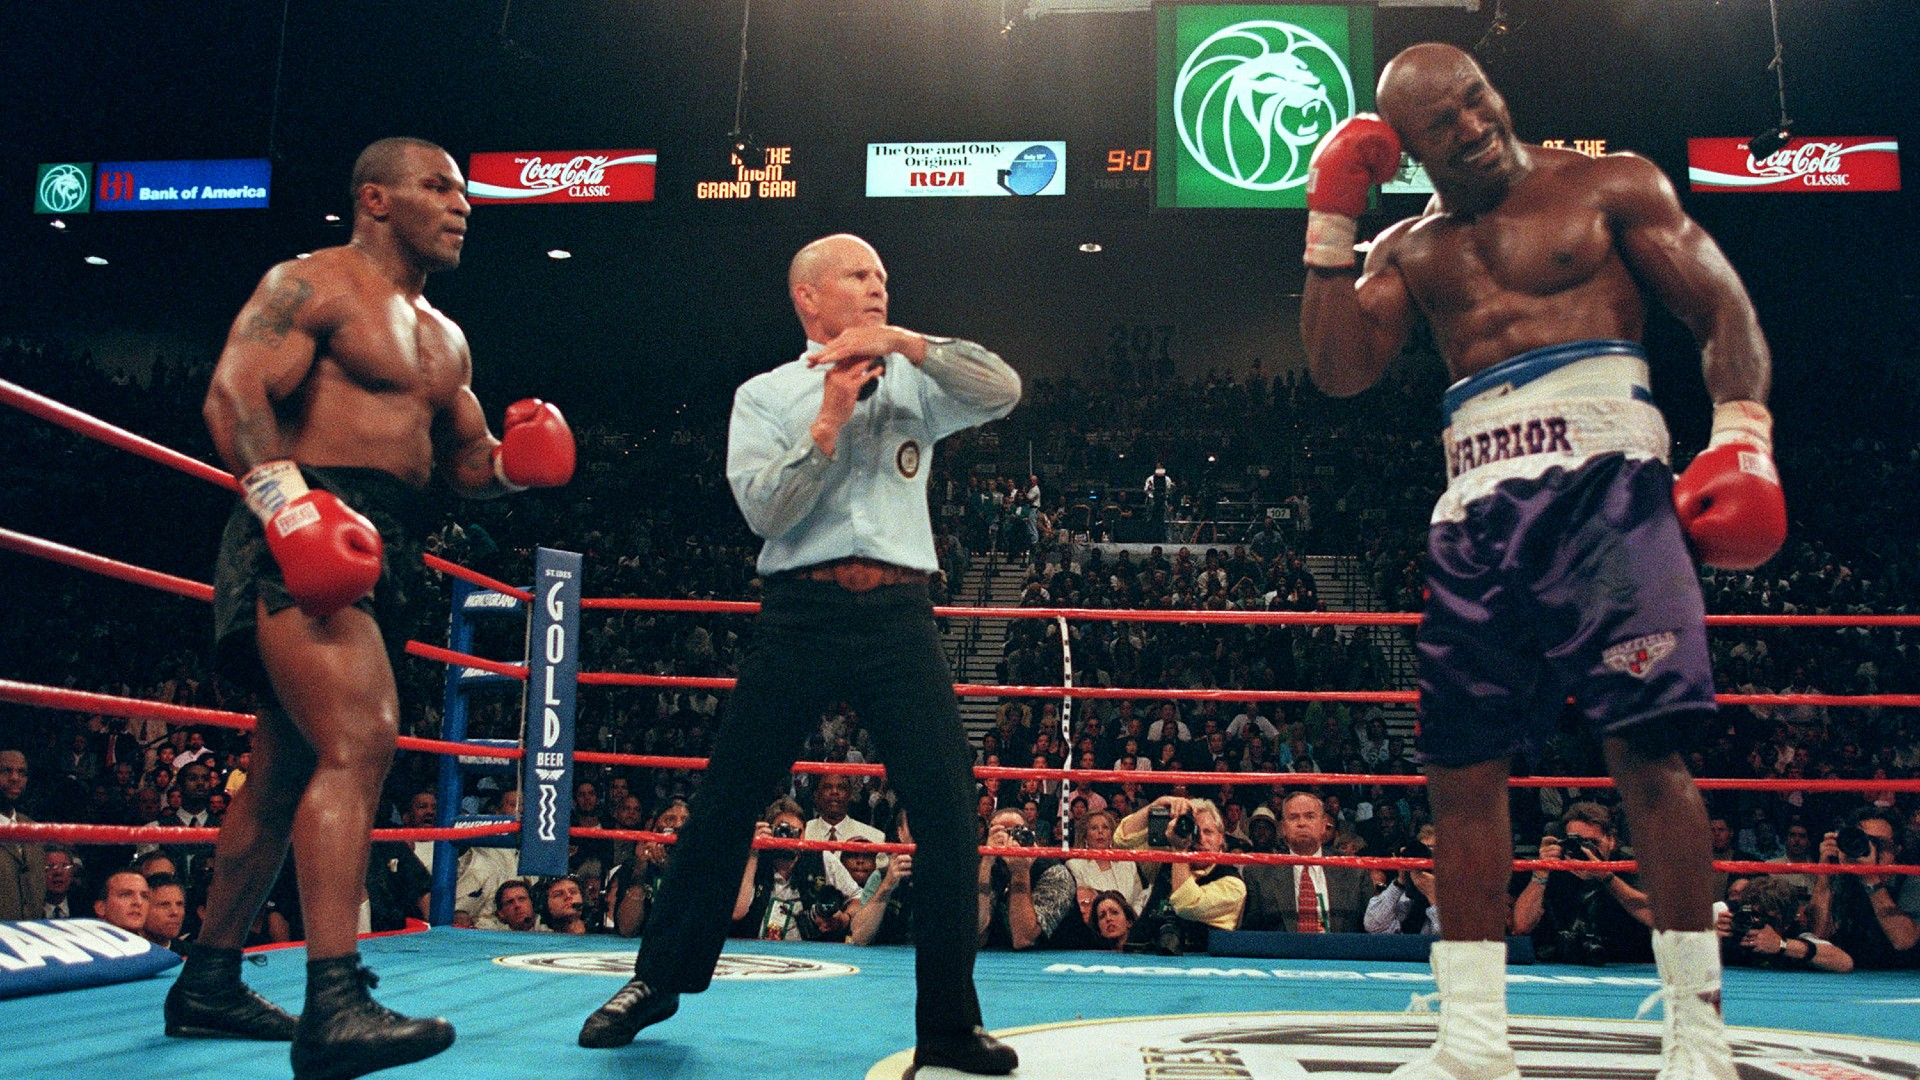 Evander Holyfield will fight Mike Tyson for 3rd time